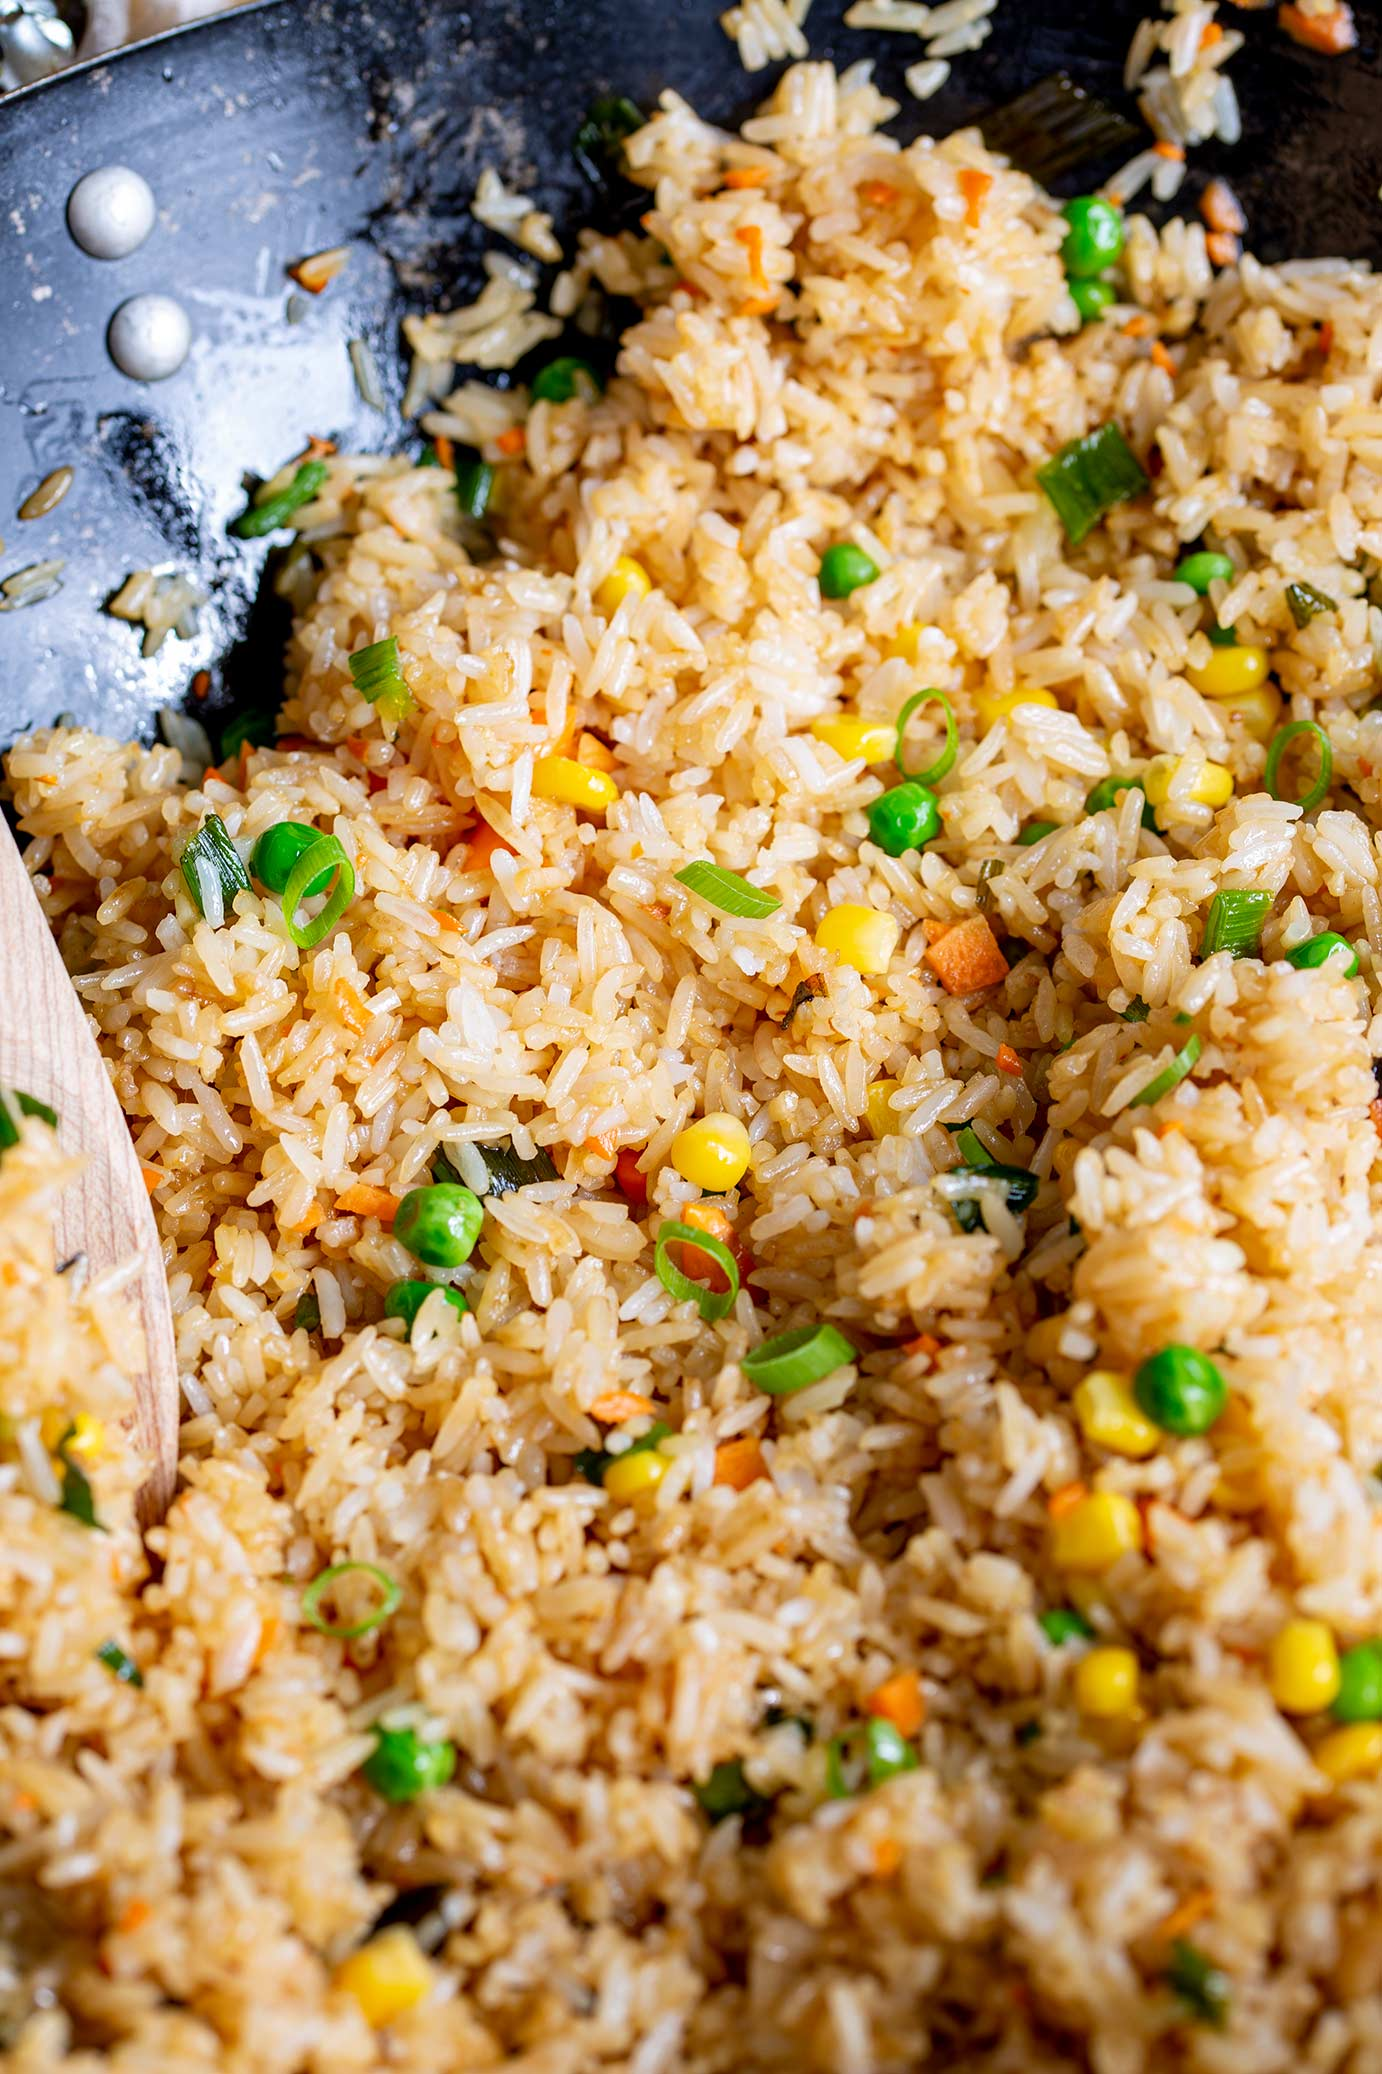 a wok of fried rice with peas, corn, carrots and green onion